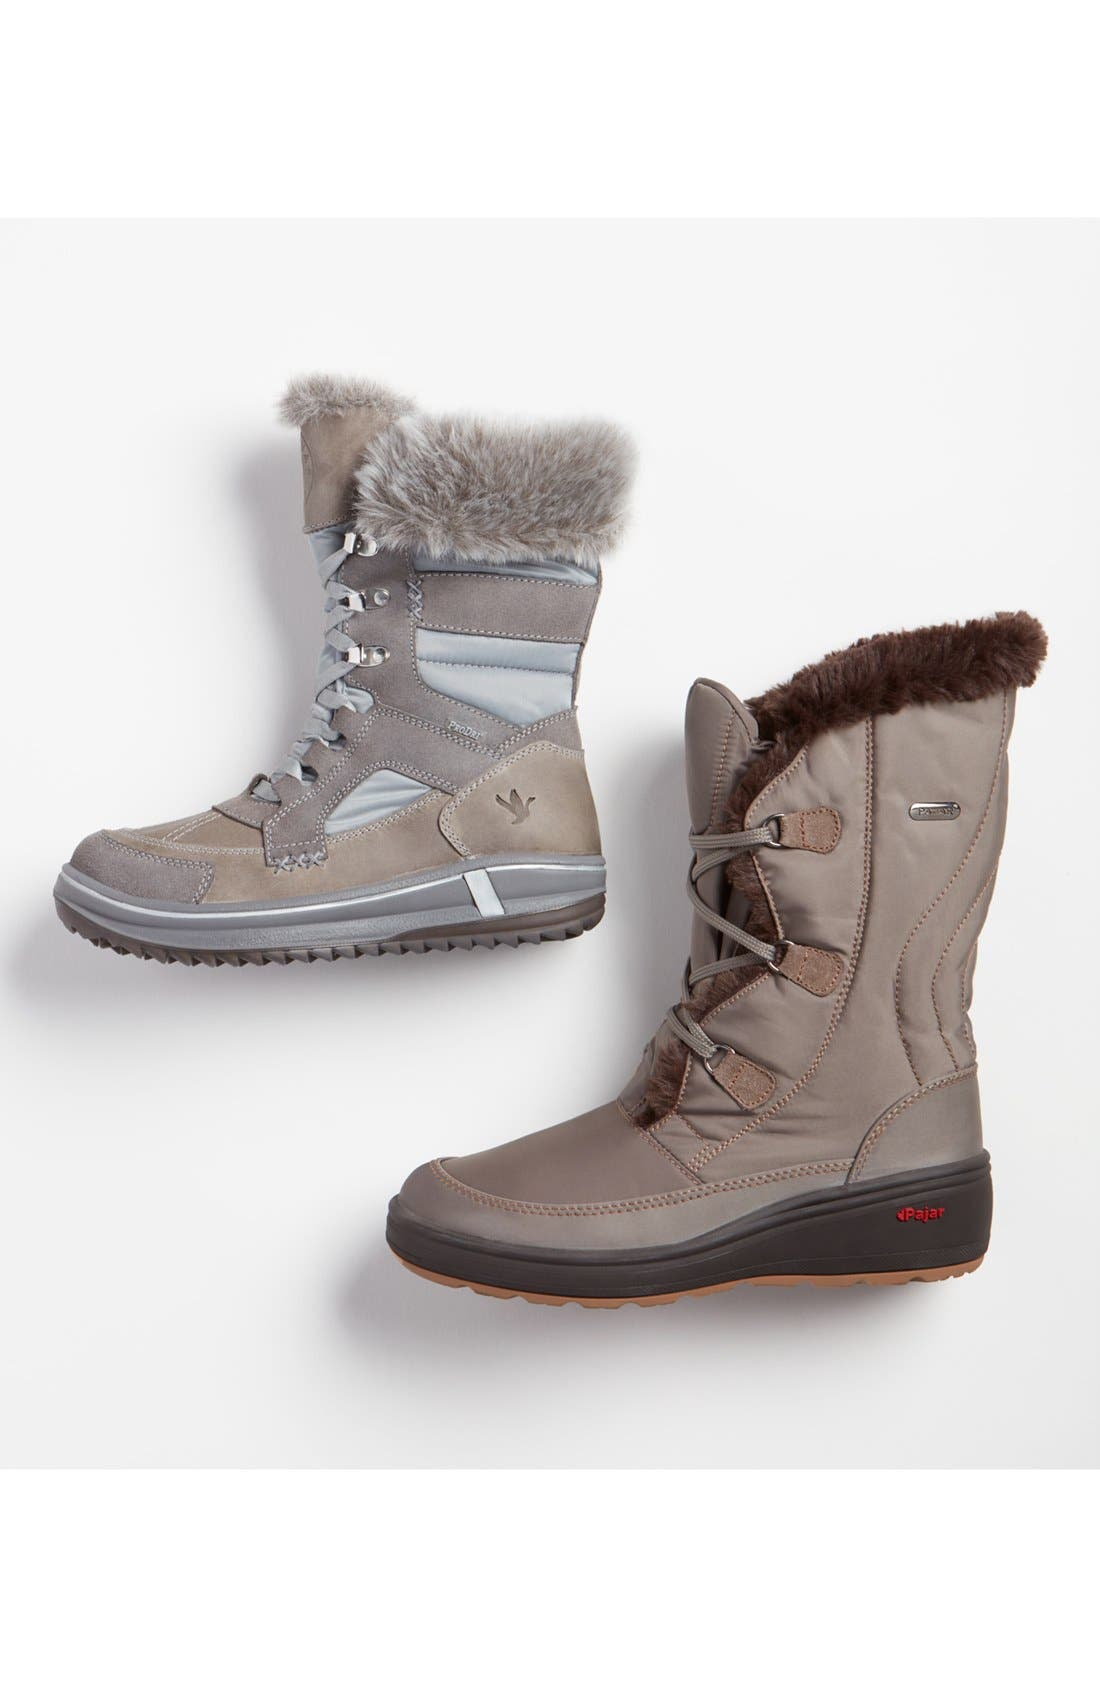 'Marta' Water Resistant Insulated Winter Boot,                             Alternate thumbnail 5, color,